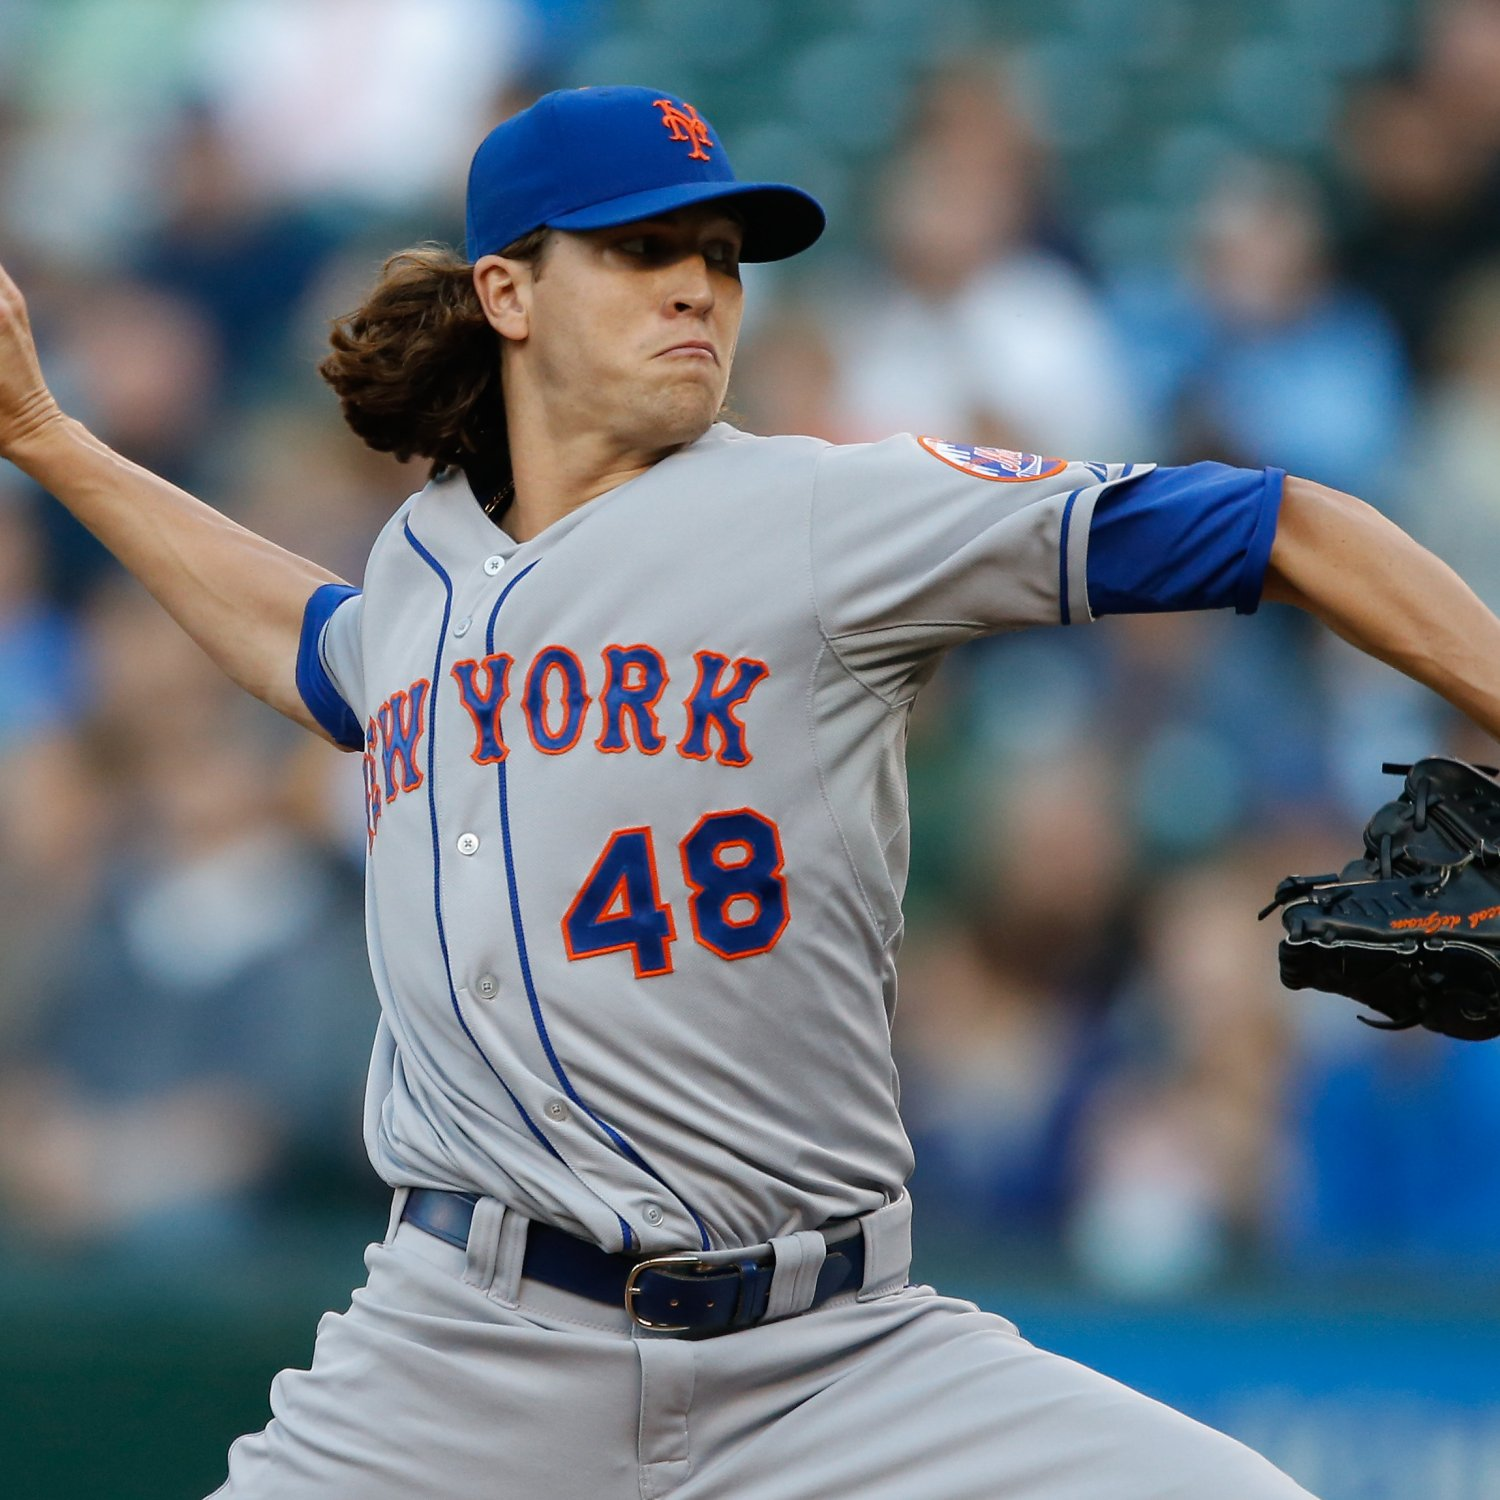 Jul 08, · The Texas Rangers acquired reliever Cory Gearrin, outfielder Austin Jackson and pitching prospect Jason Bahr in a trade with the San Francisco Giants Sunday: In a corresponding.